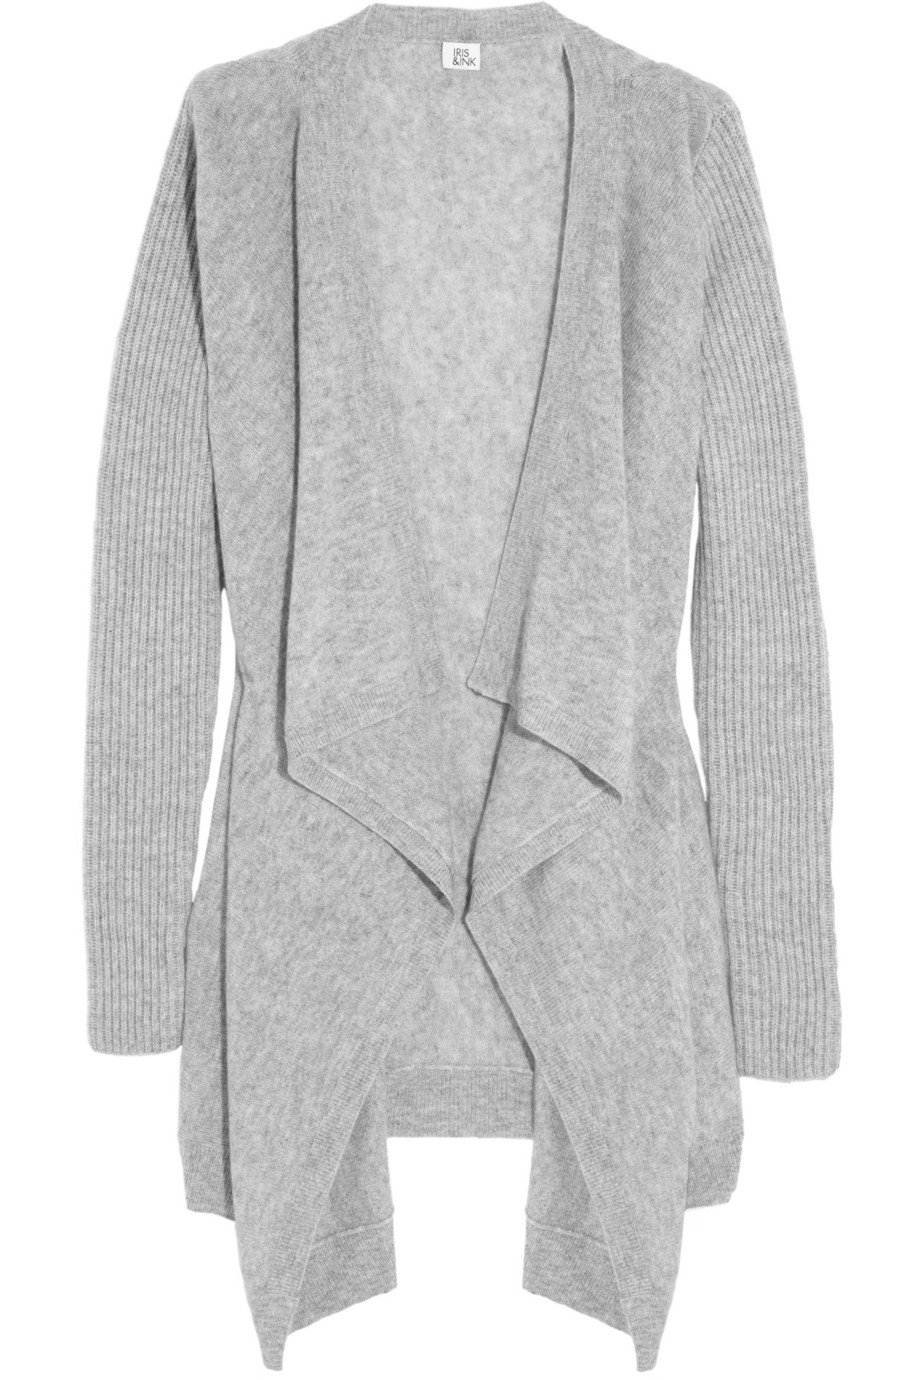 Iris & ink Ribbedsleeve Draped Cashmere Cardigan in Gray | Lyst